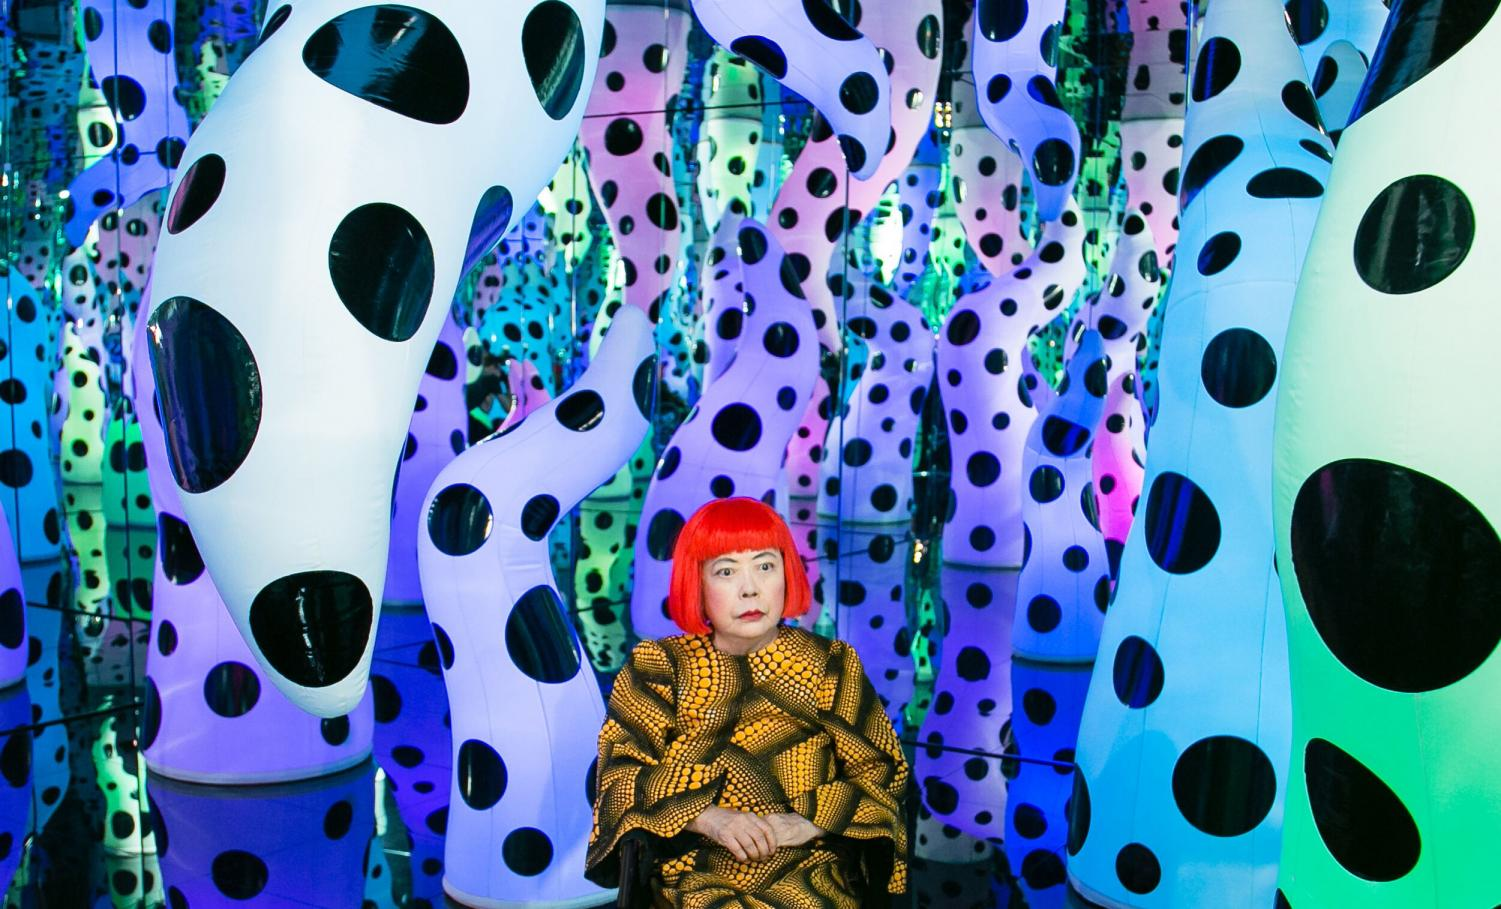 Yayoi Kusama pictured with her work LOVE IS CALLING, 2013 during her solo exhibition I Who Have Arrived In Heaven at David Zwirner, New York, 2013. © YAYOI KUSAMA. Courtesy David Zwirner, New York; Ota Fine Arts, Tokyo/Singapore /Shanghai; Victoria Miro, London/Venice